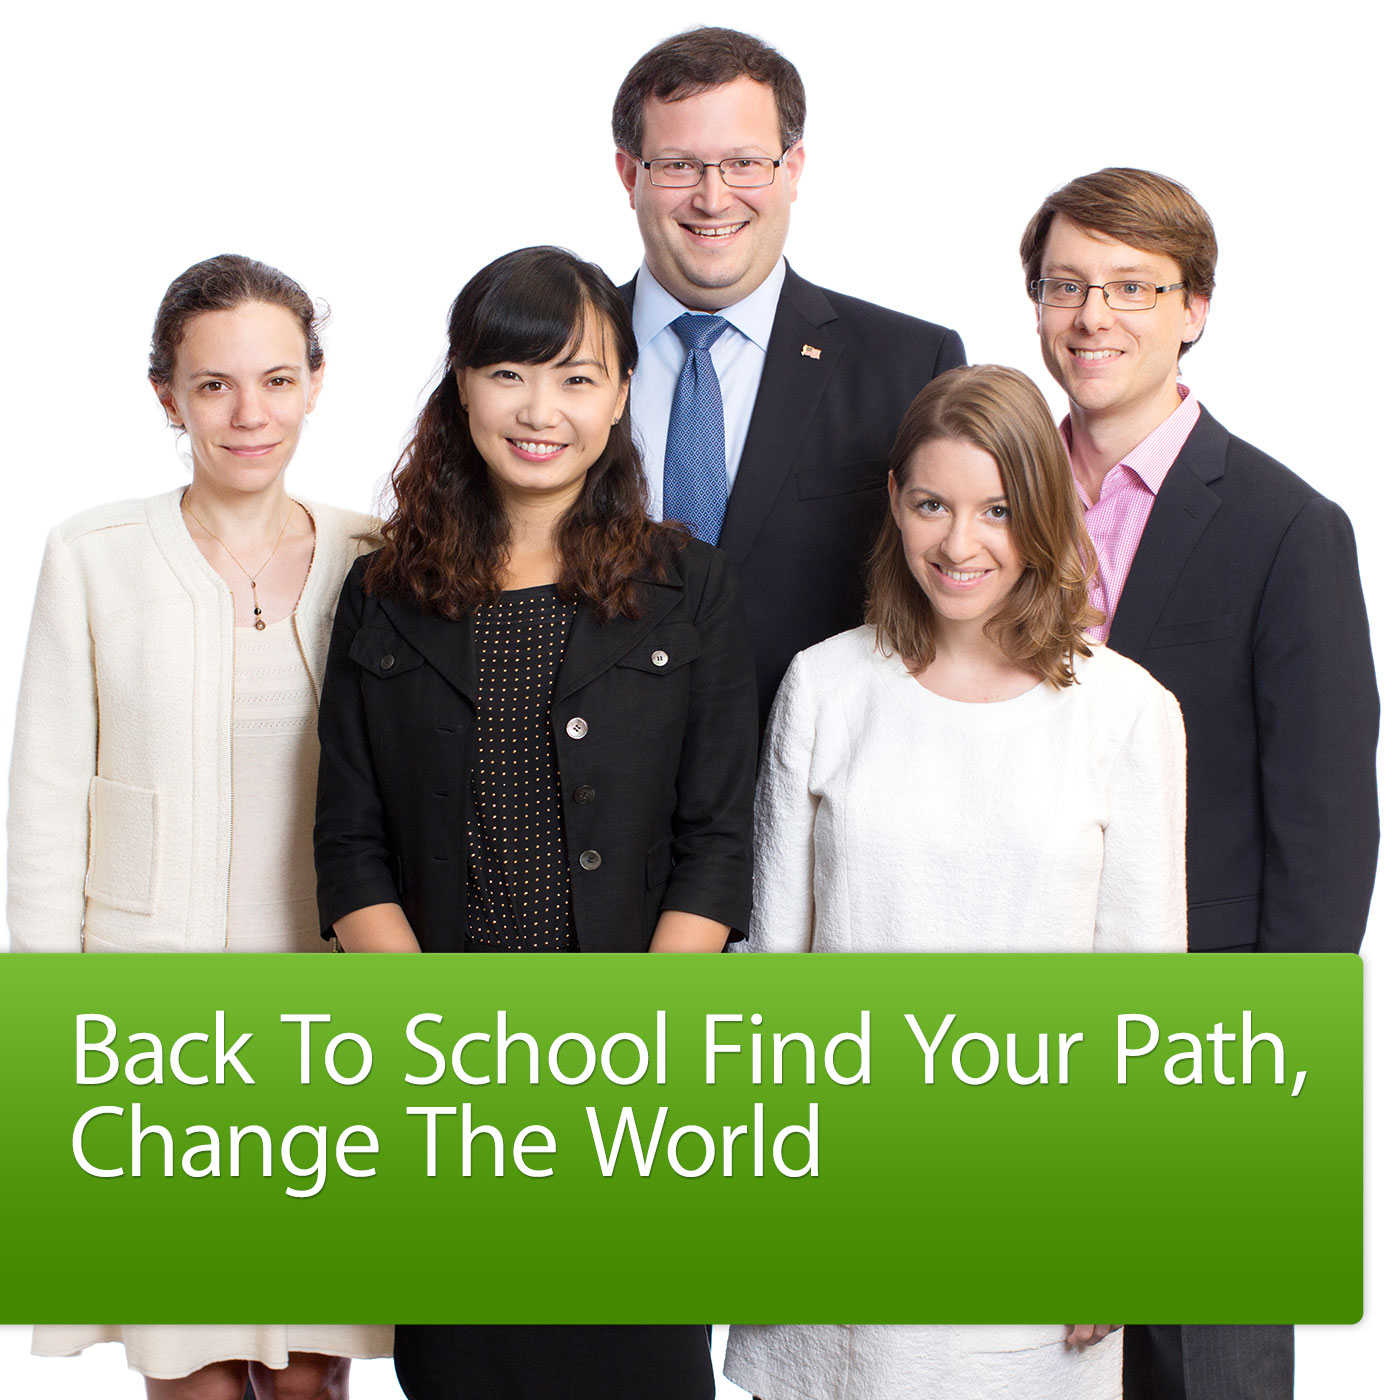 Back to School: Find Your Path, Change the World: Special Event